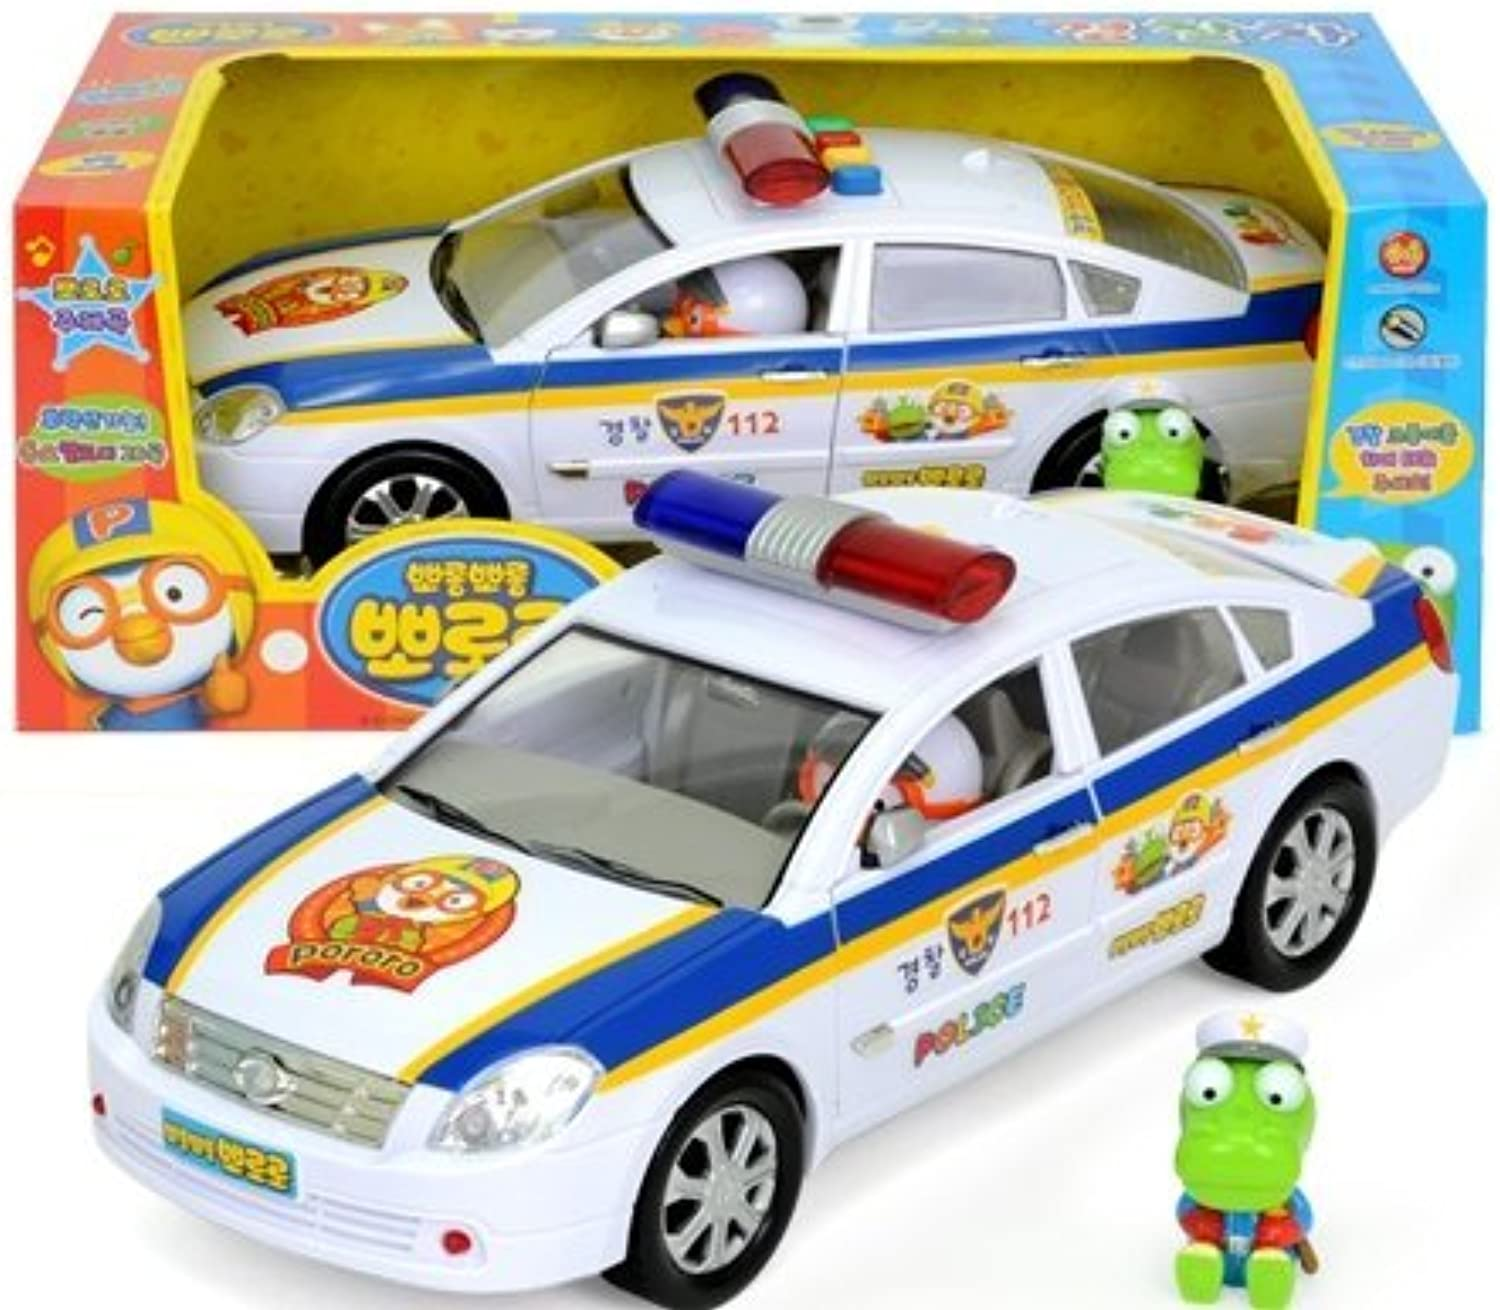 Pgoldro & Crong Police Toy Car by Pgoldro